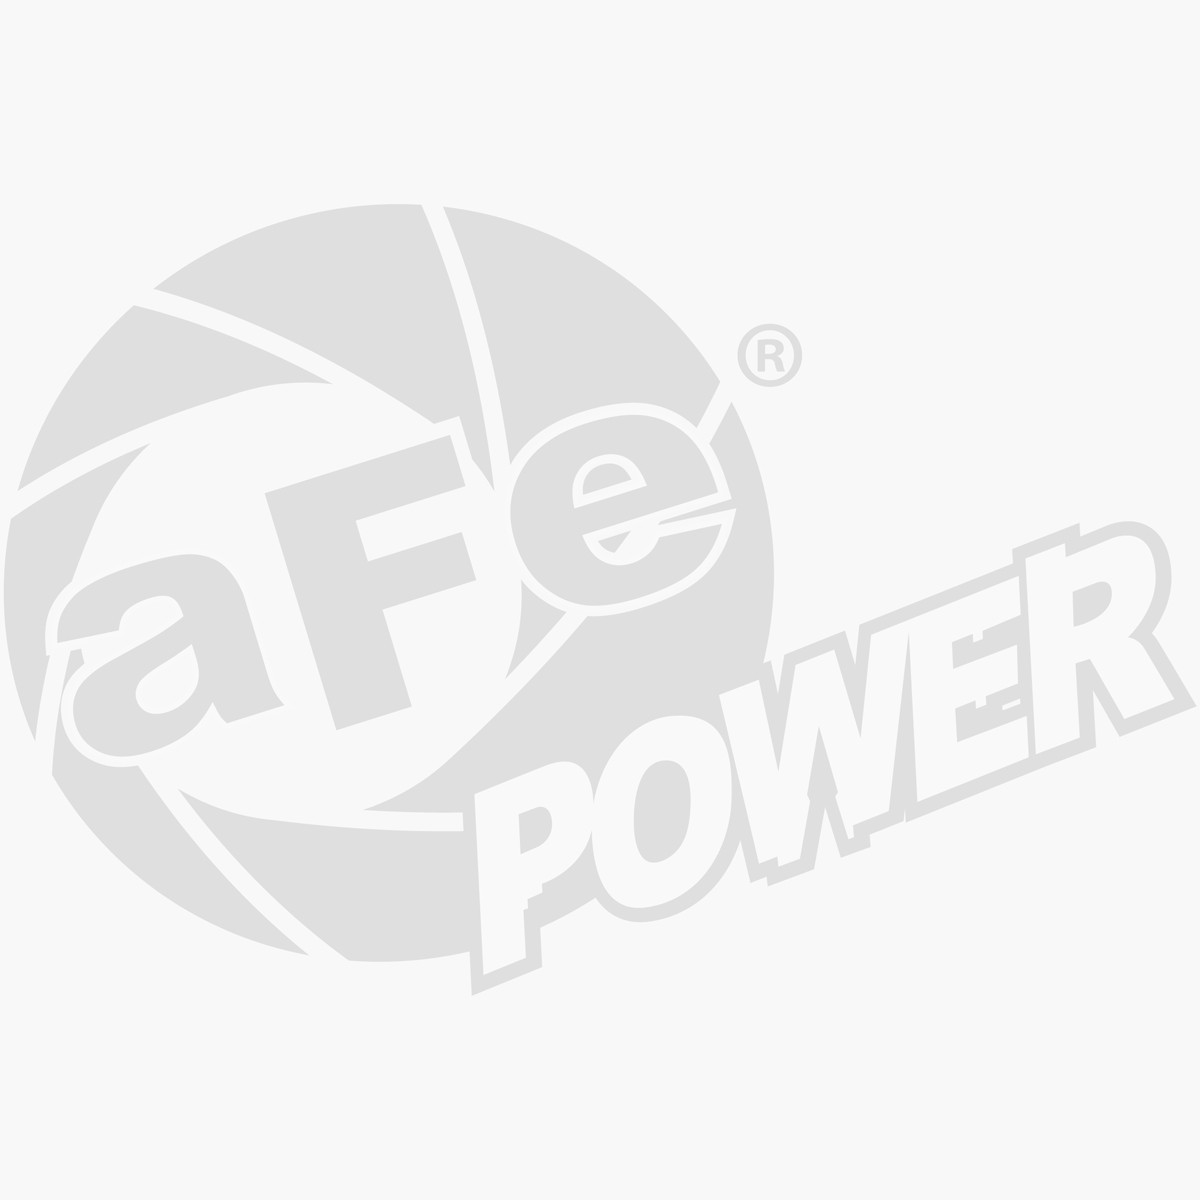 aFe POWER 40-14062 Flyer Dodge Ram, 03-08 V8-5.7L HEMI